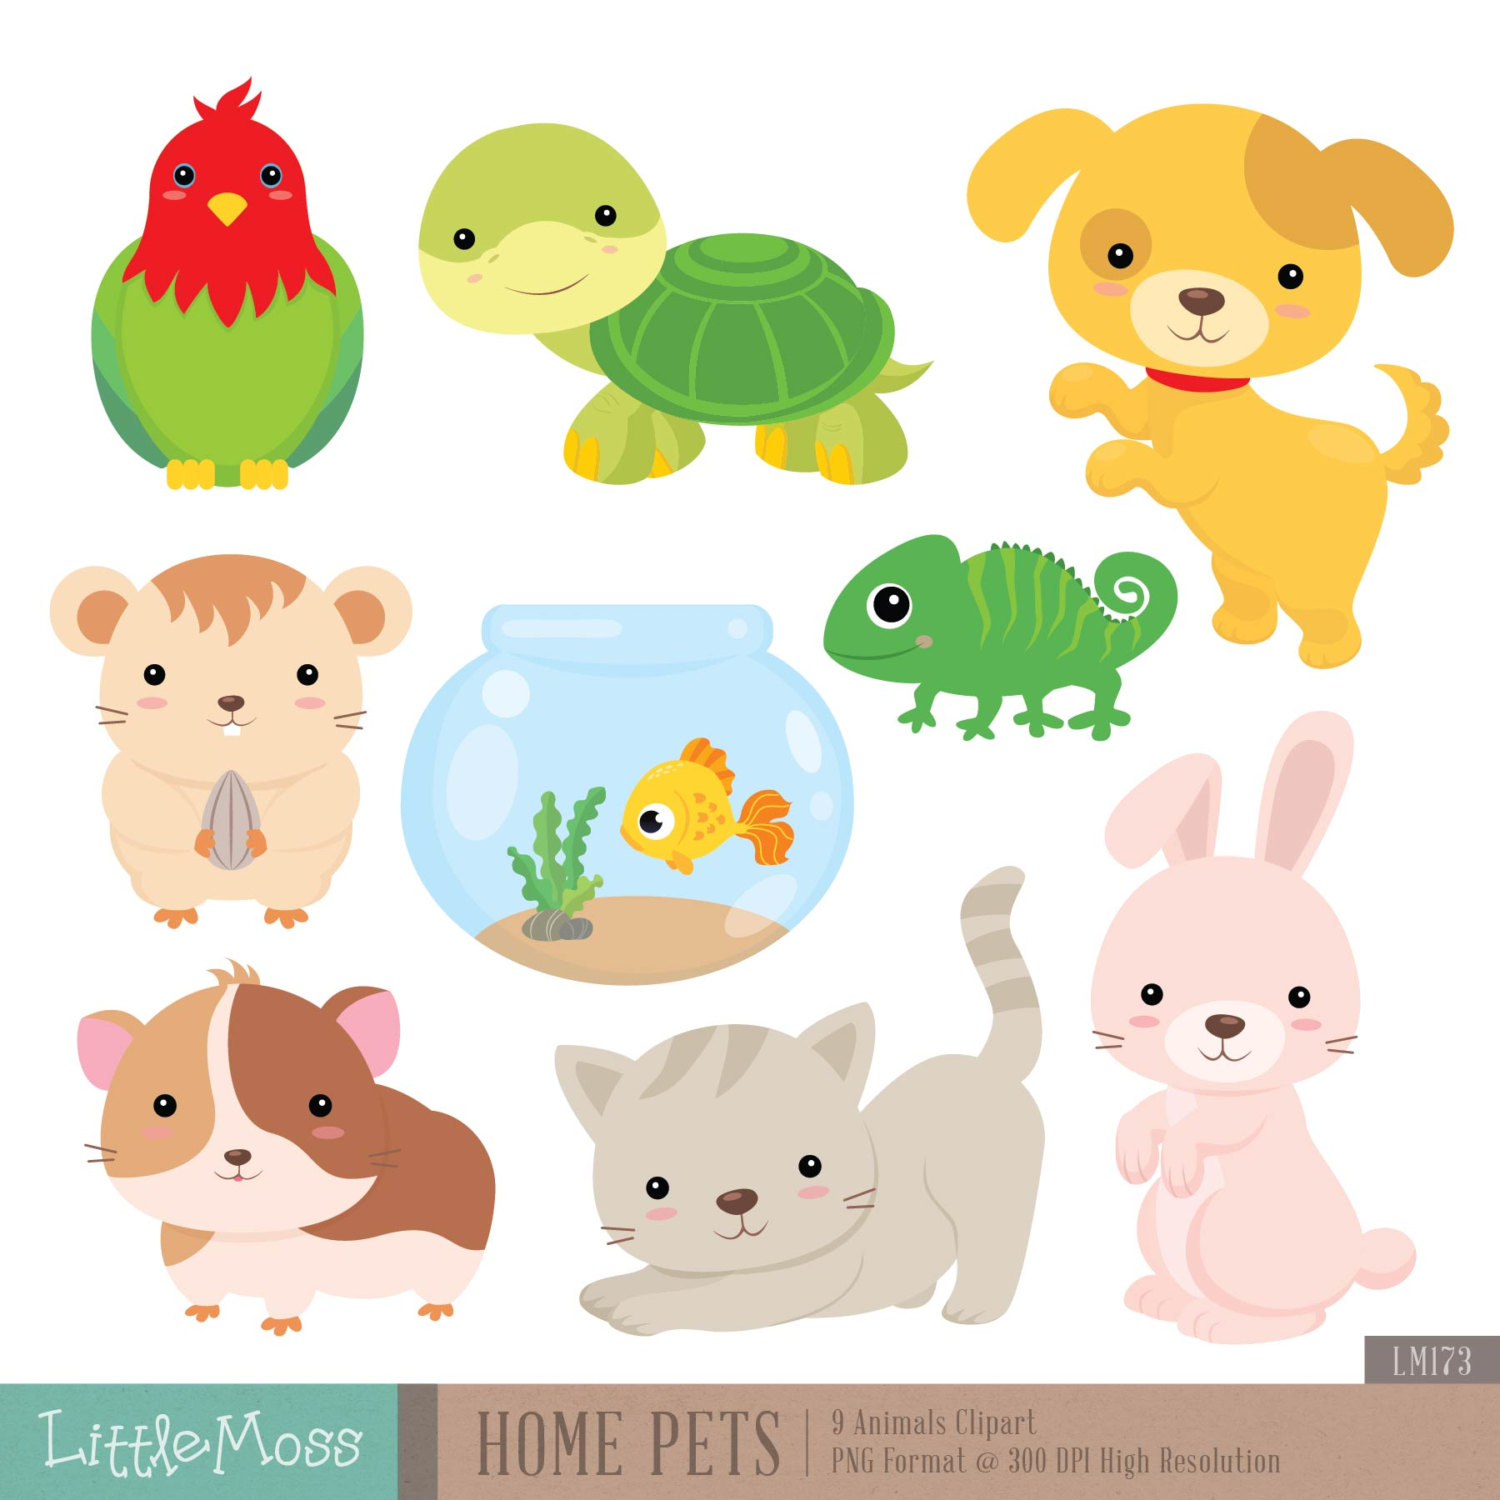 Pet clipart. Home pets digital dog